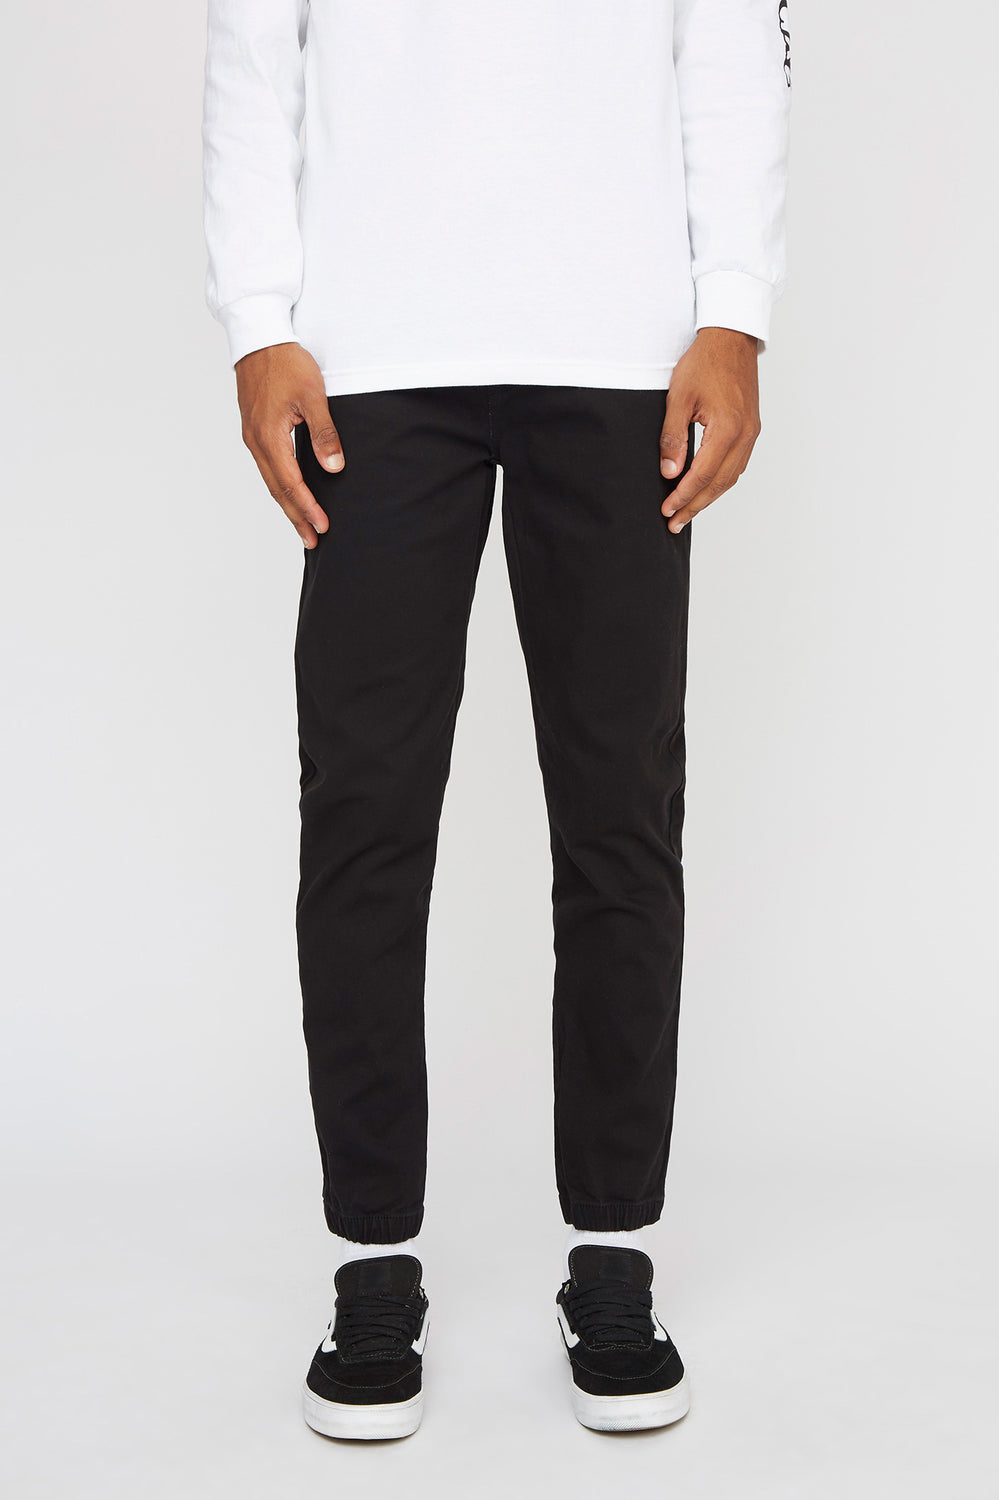 West49 Mens Solid Twill Jogger Black